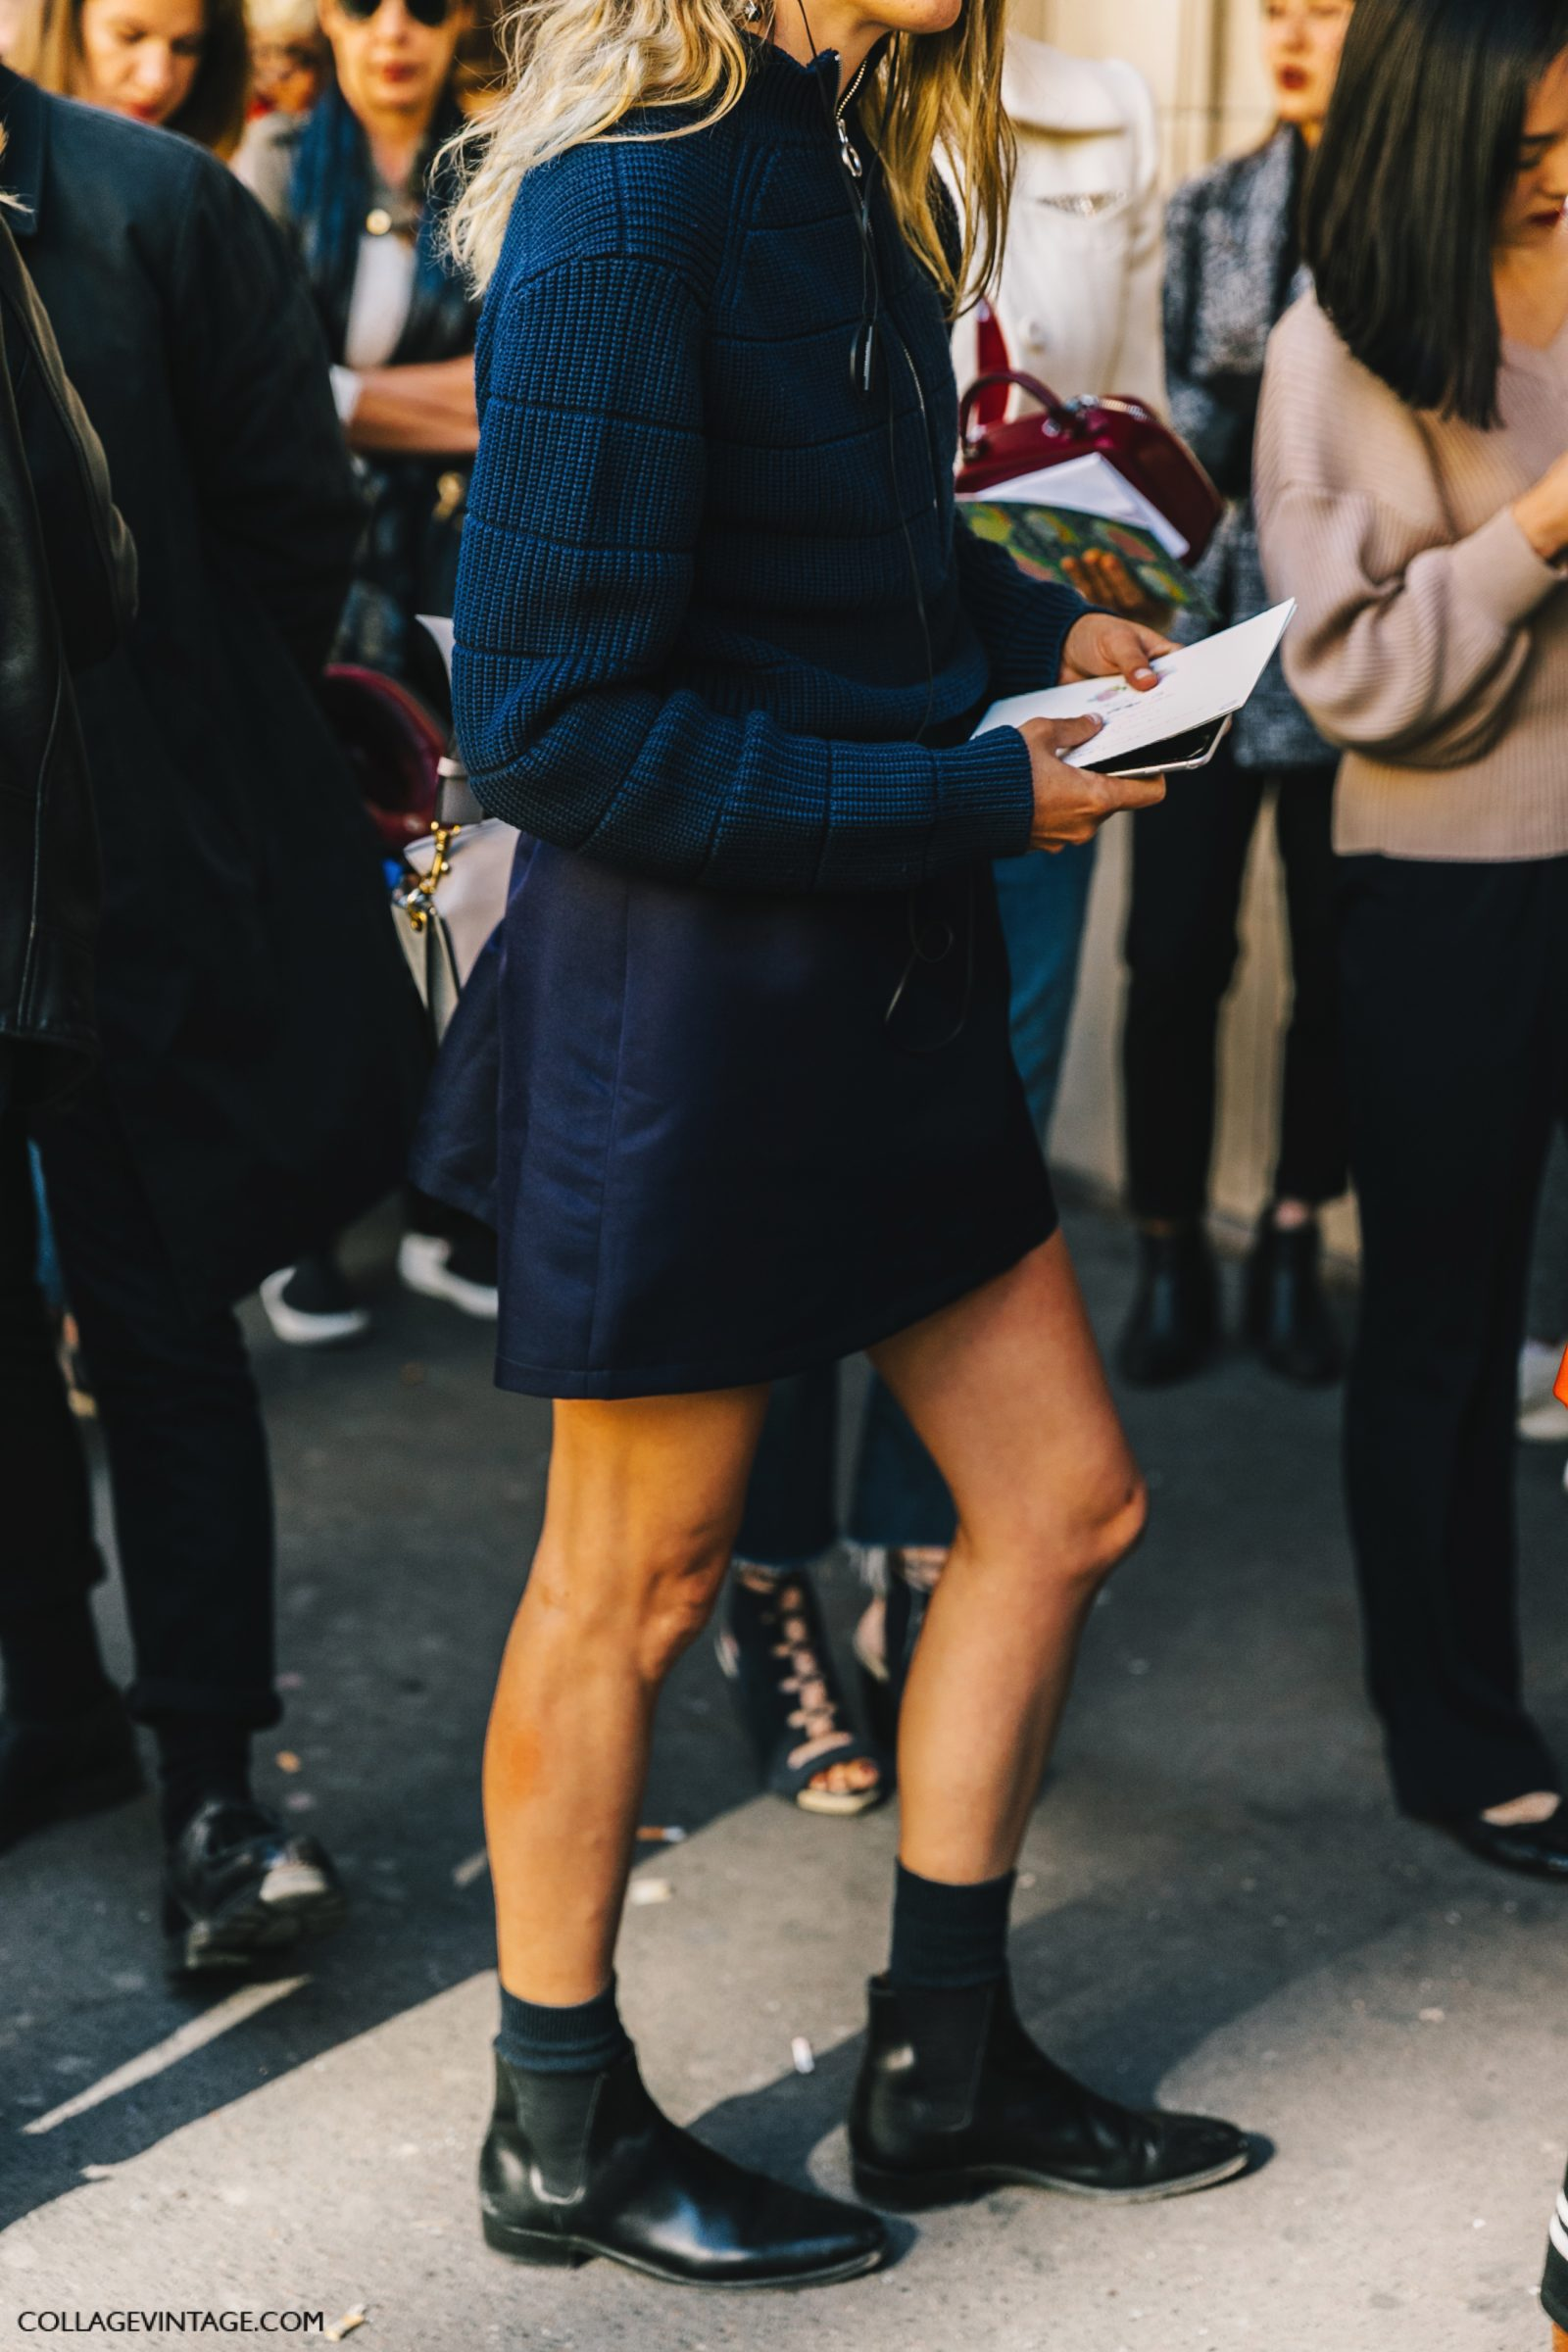 pfw-paris_fashion_week_ss17-street_style-outfits-collage_vintage-olympia_letan-hermes-stella_mccartney-sacai-164